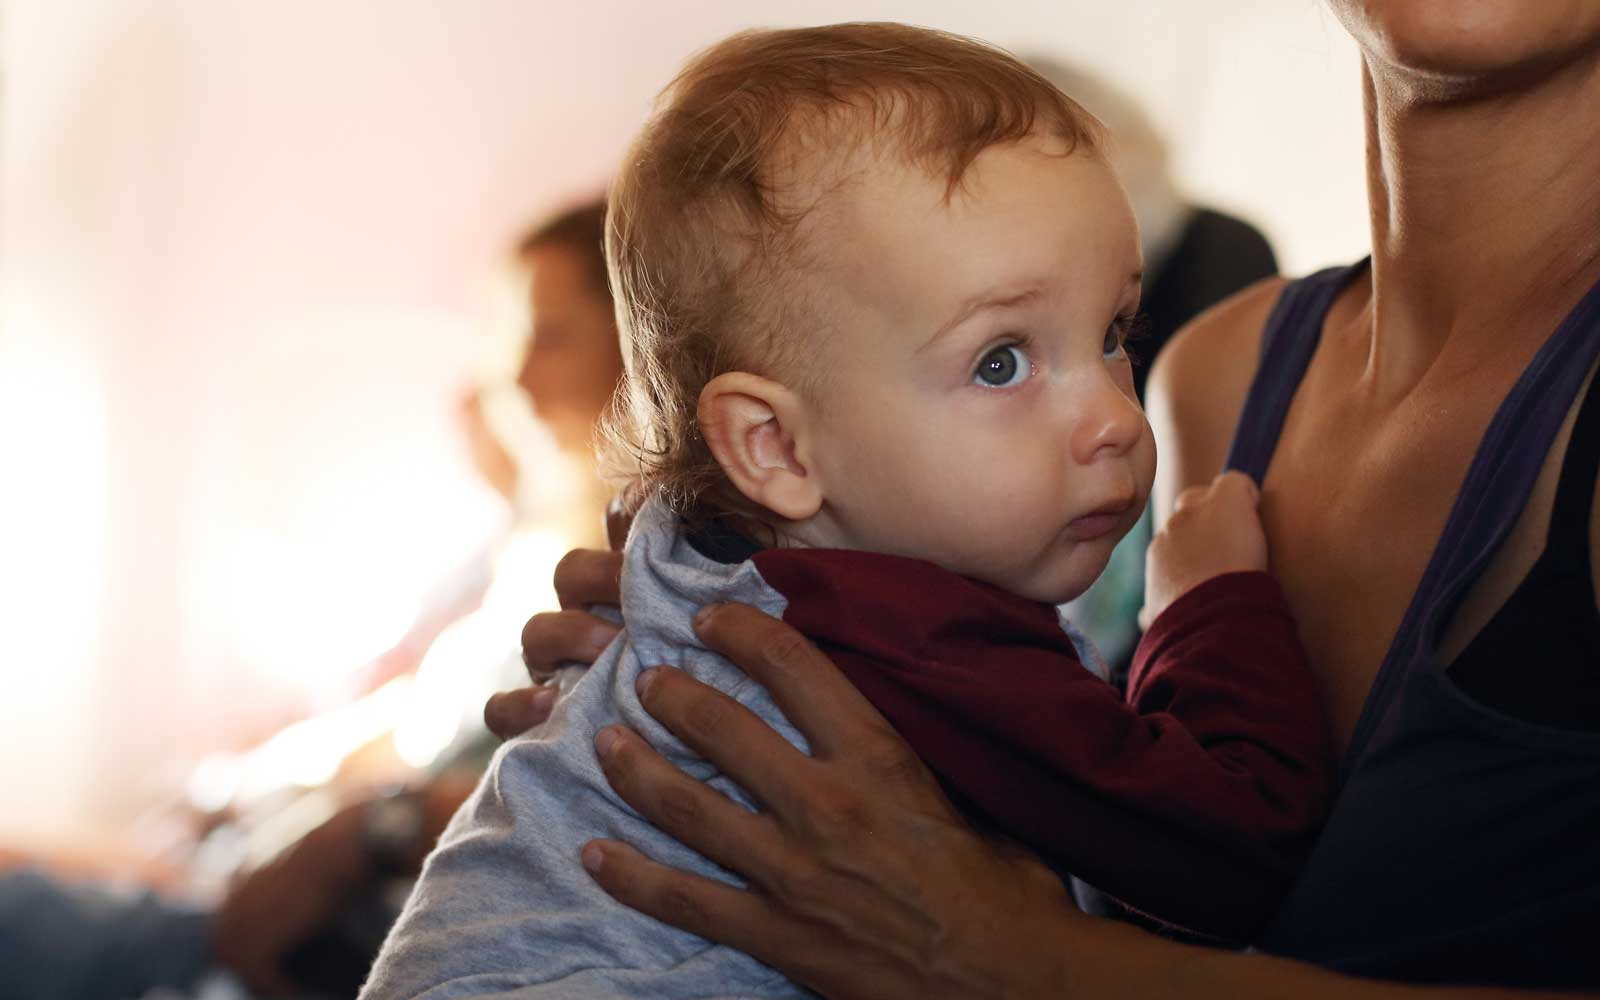 Toddler with mother on airplane